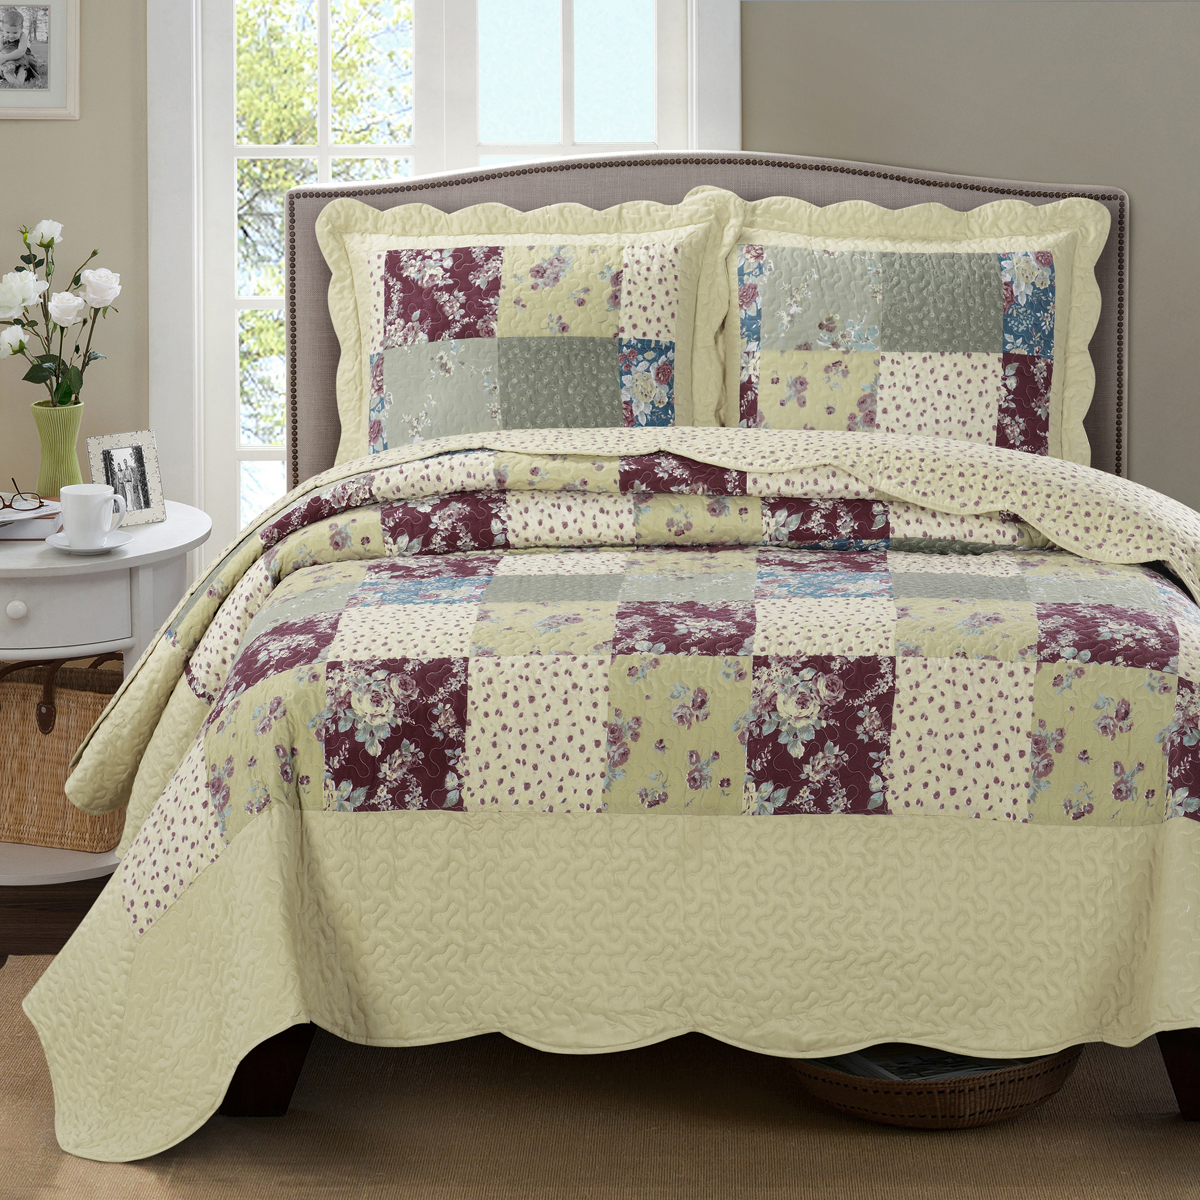 Tania Oversize Coverlet Floral Patchwork Print Reversible Wrinkle-Free Set : Full/Queen